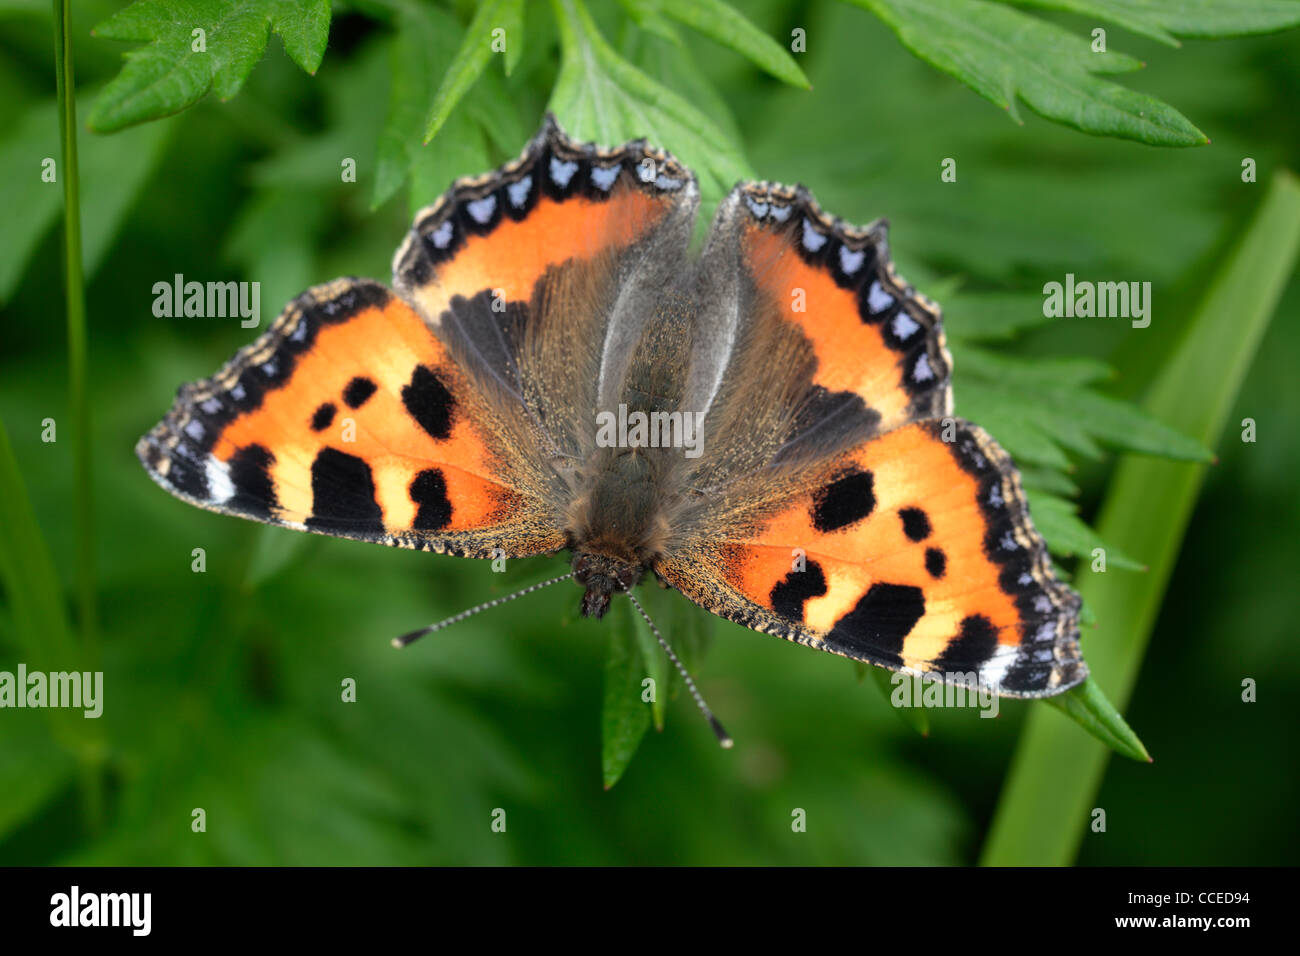 A brightly colored butterfly called a Small Tortoiseshell (aglais urticae) in spring - Stock Image